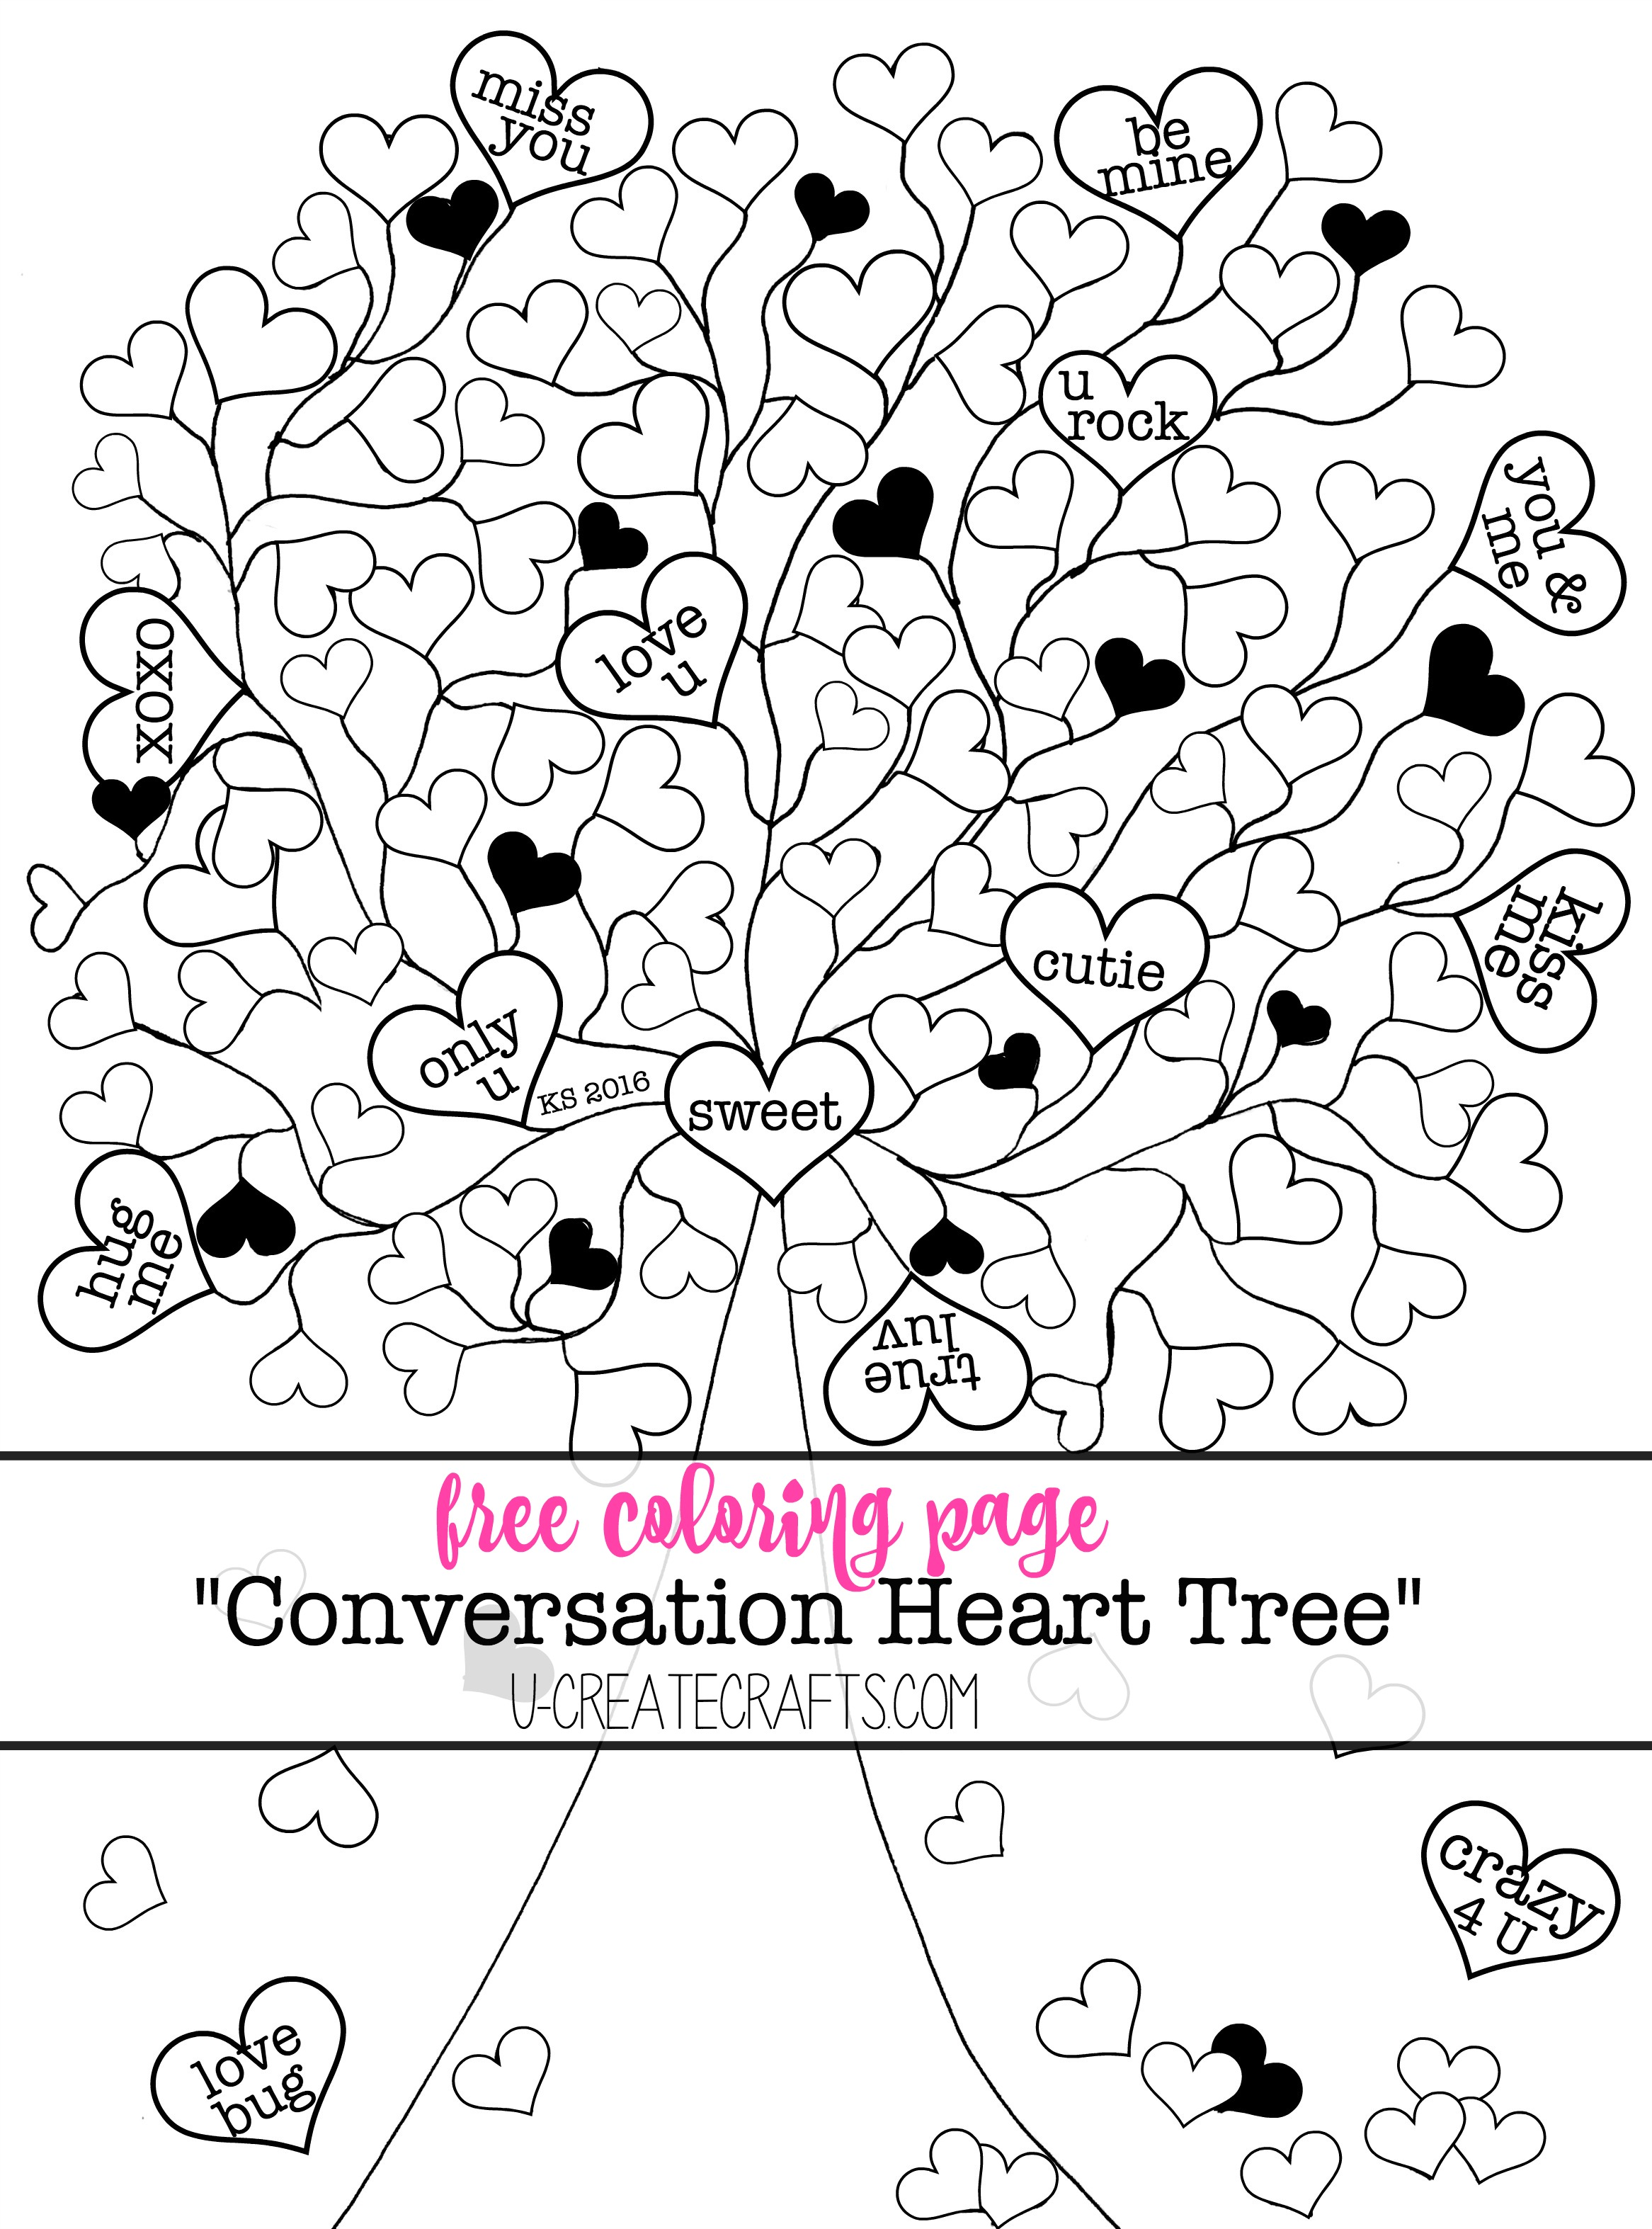 Valentine Conversation Heart Tree Coloring Pages U Create Free Tree Coloring Image